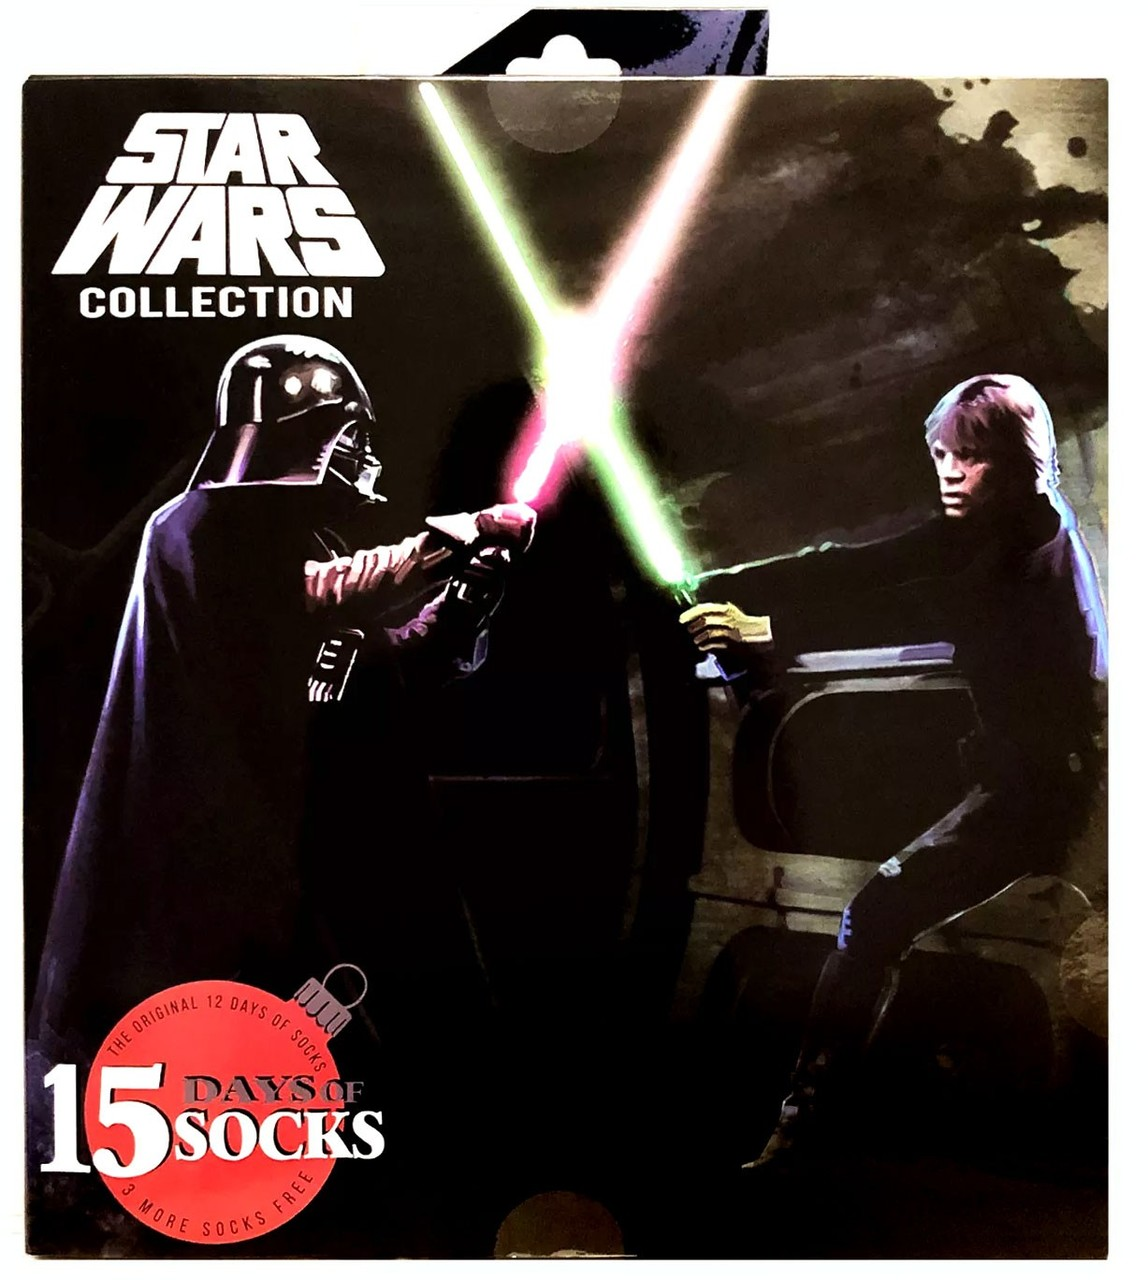 Darth Vader and Luke Skywalker fighting on a cover of a box of socks.